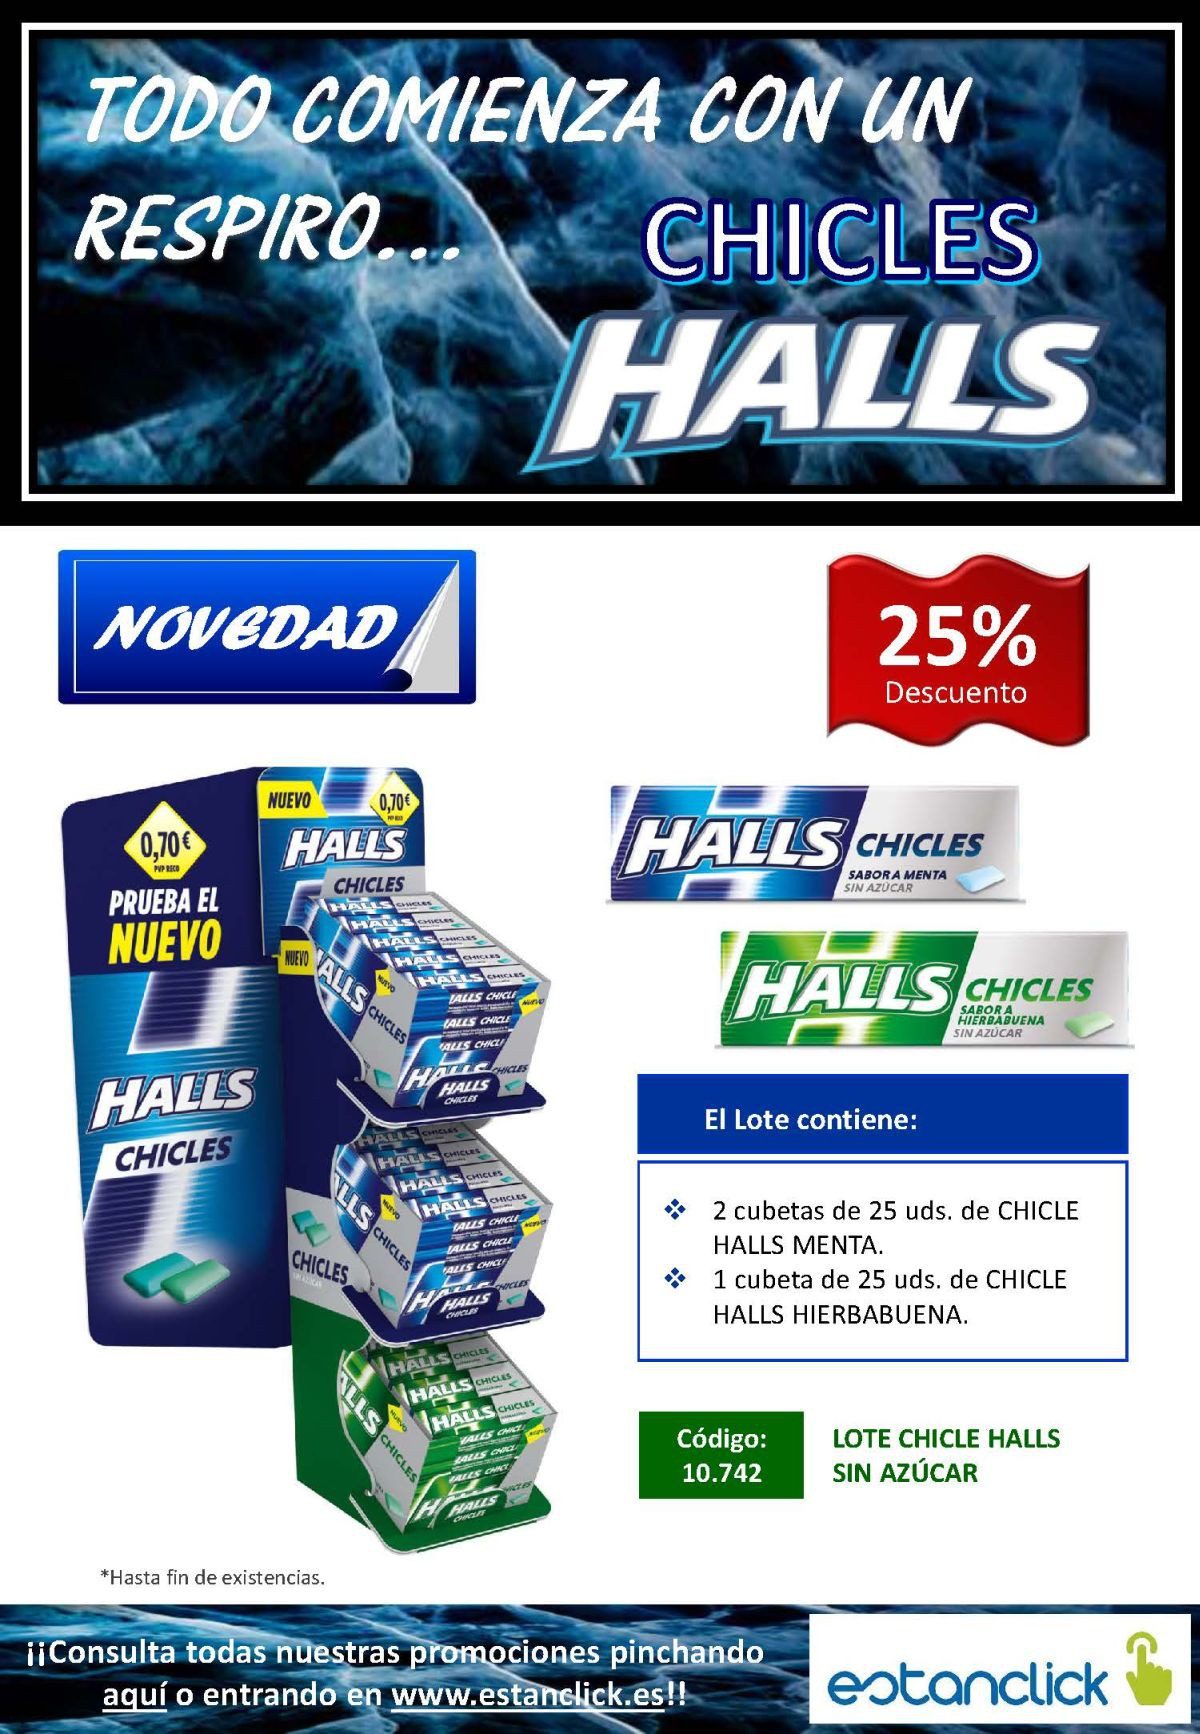 Lote Chicles Halls